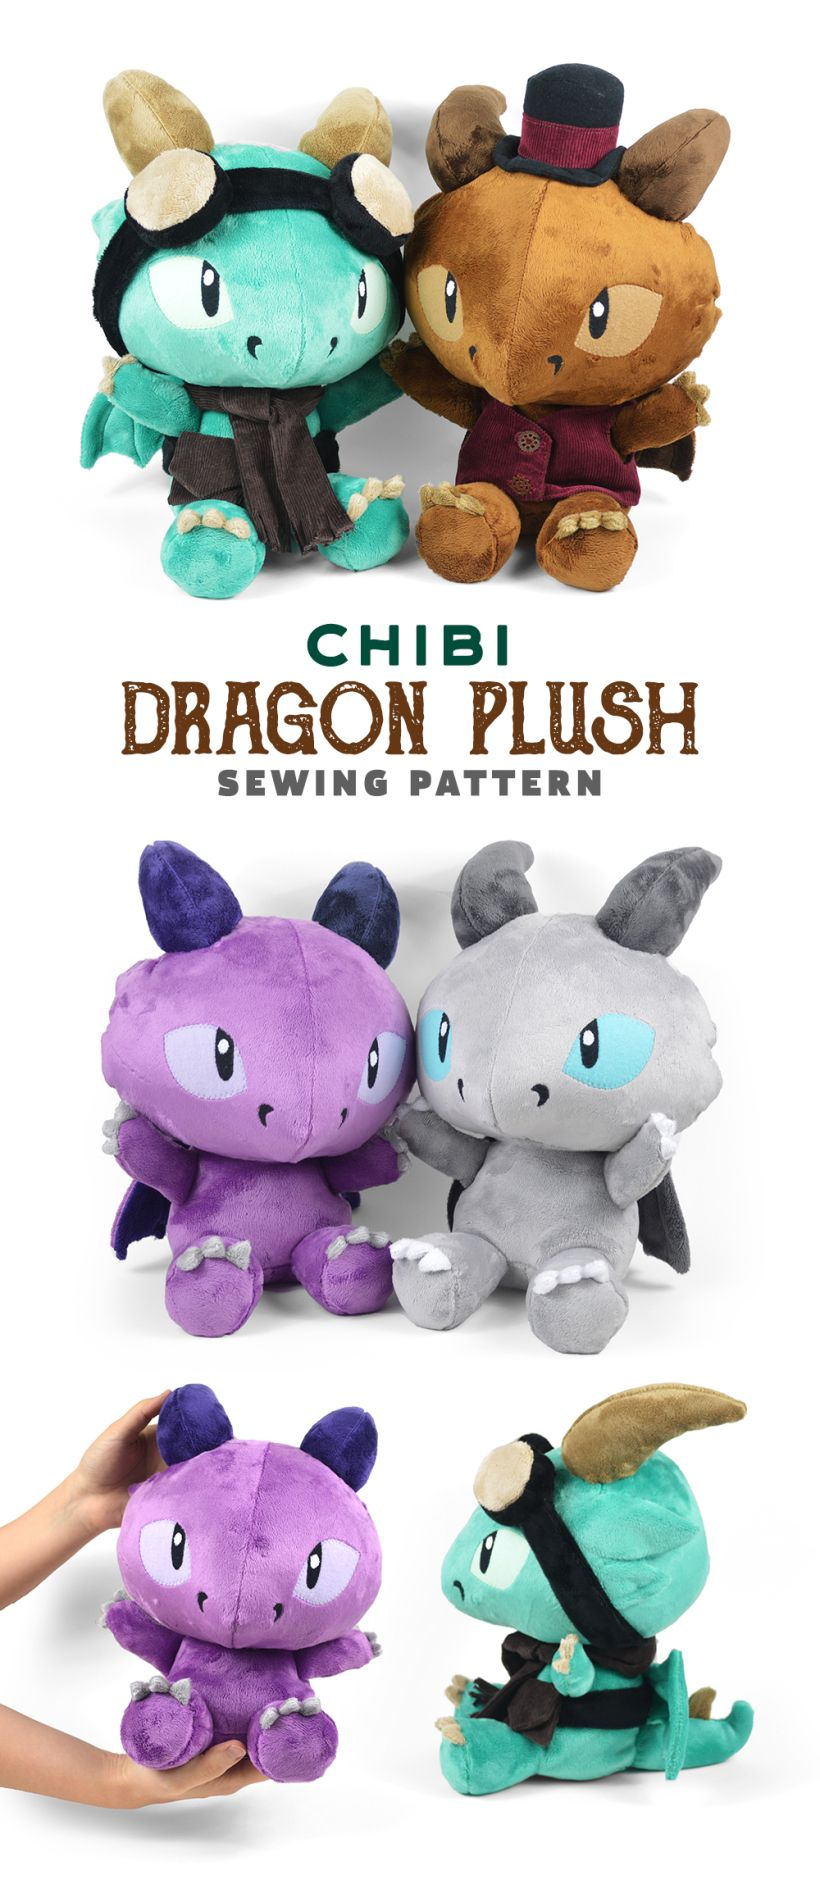 Black Friday Sale & New Chibi Dragon Plush Pattern! | Choly Knight ...